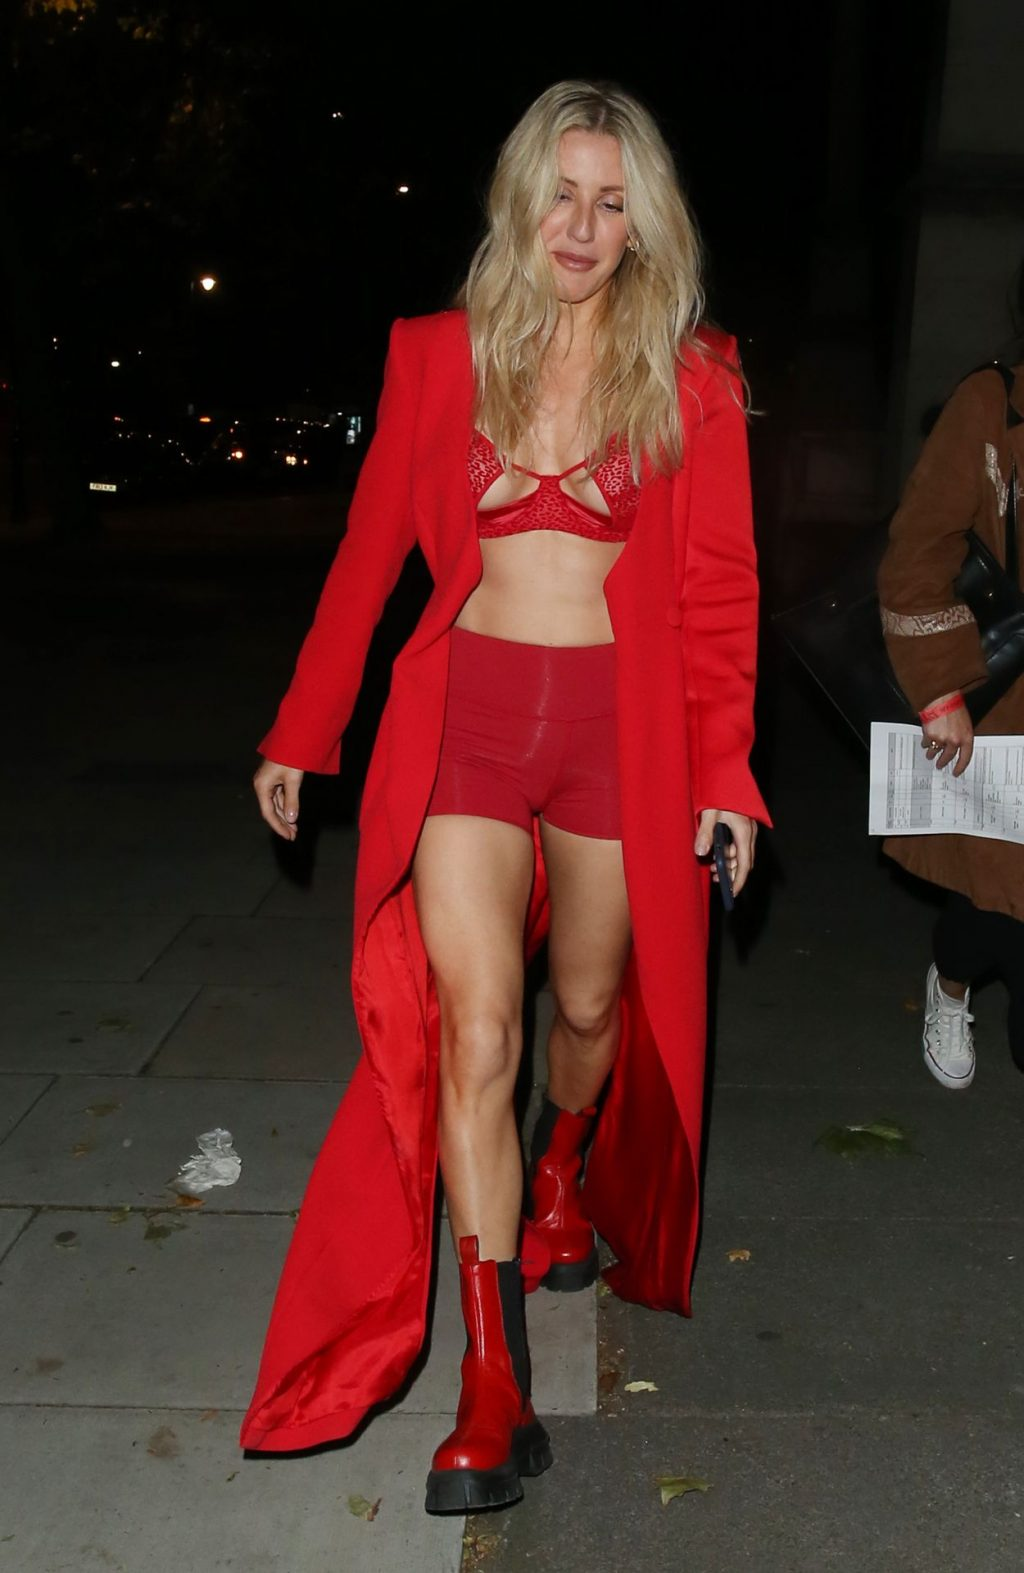 Ellie Goulding Shows Her Tits, Cameltoe and Legs in London (103 Photos)